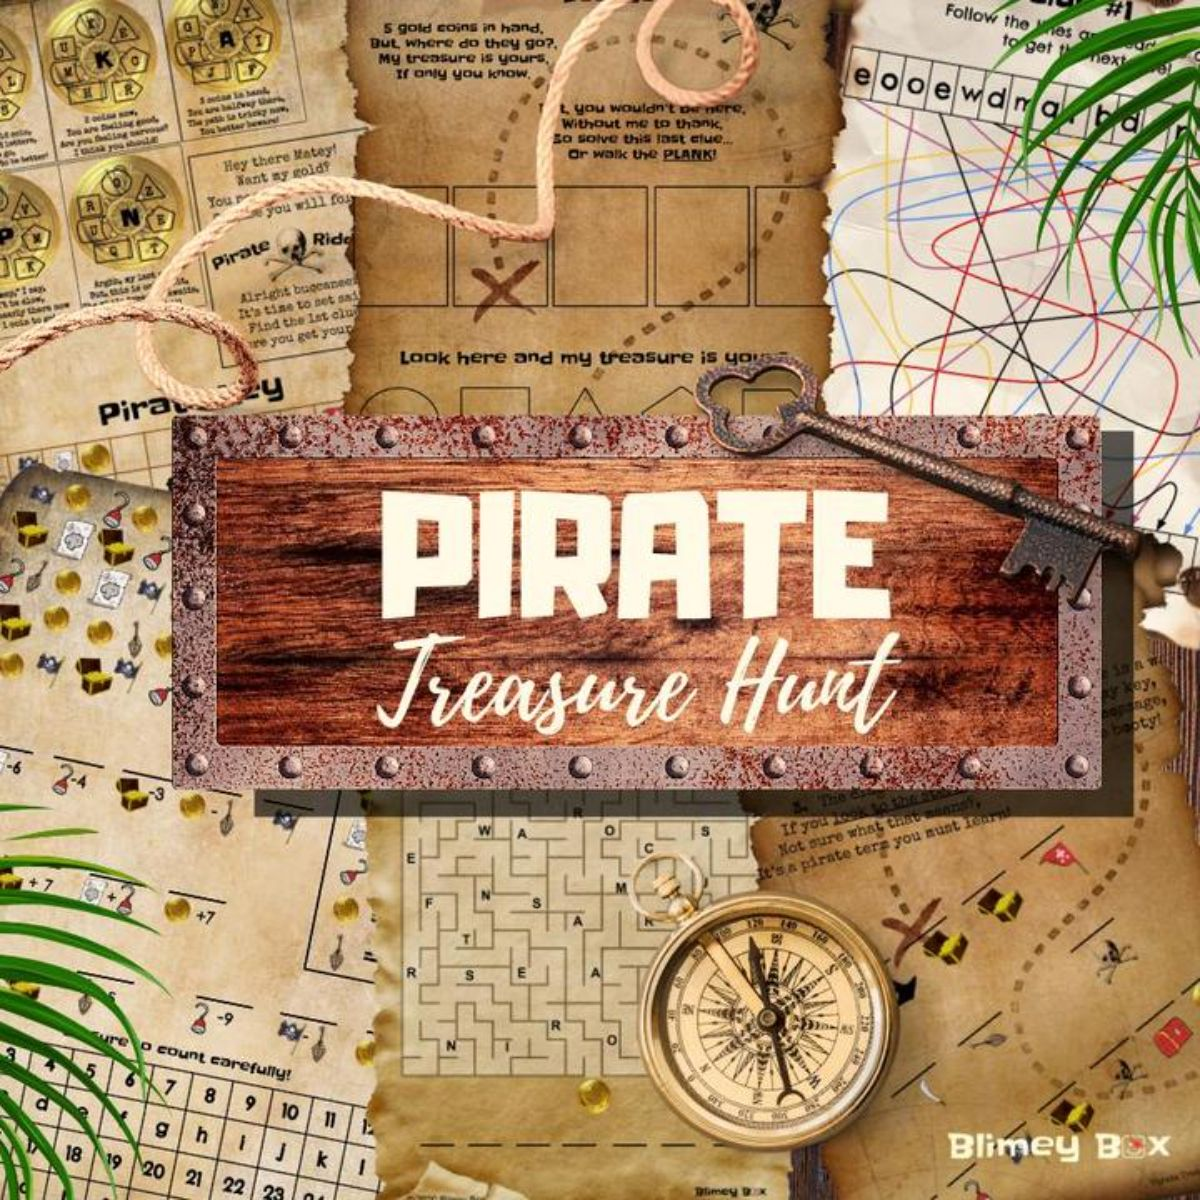 an image showing pages from a pirate treasure hunt.